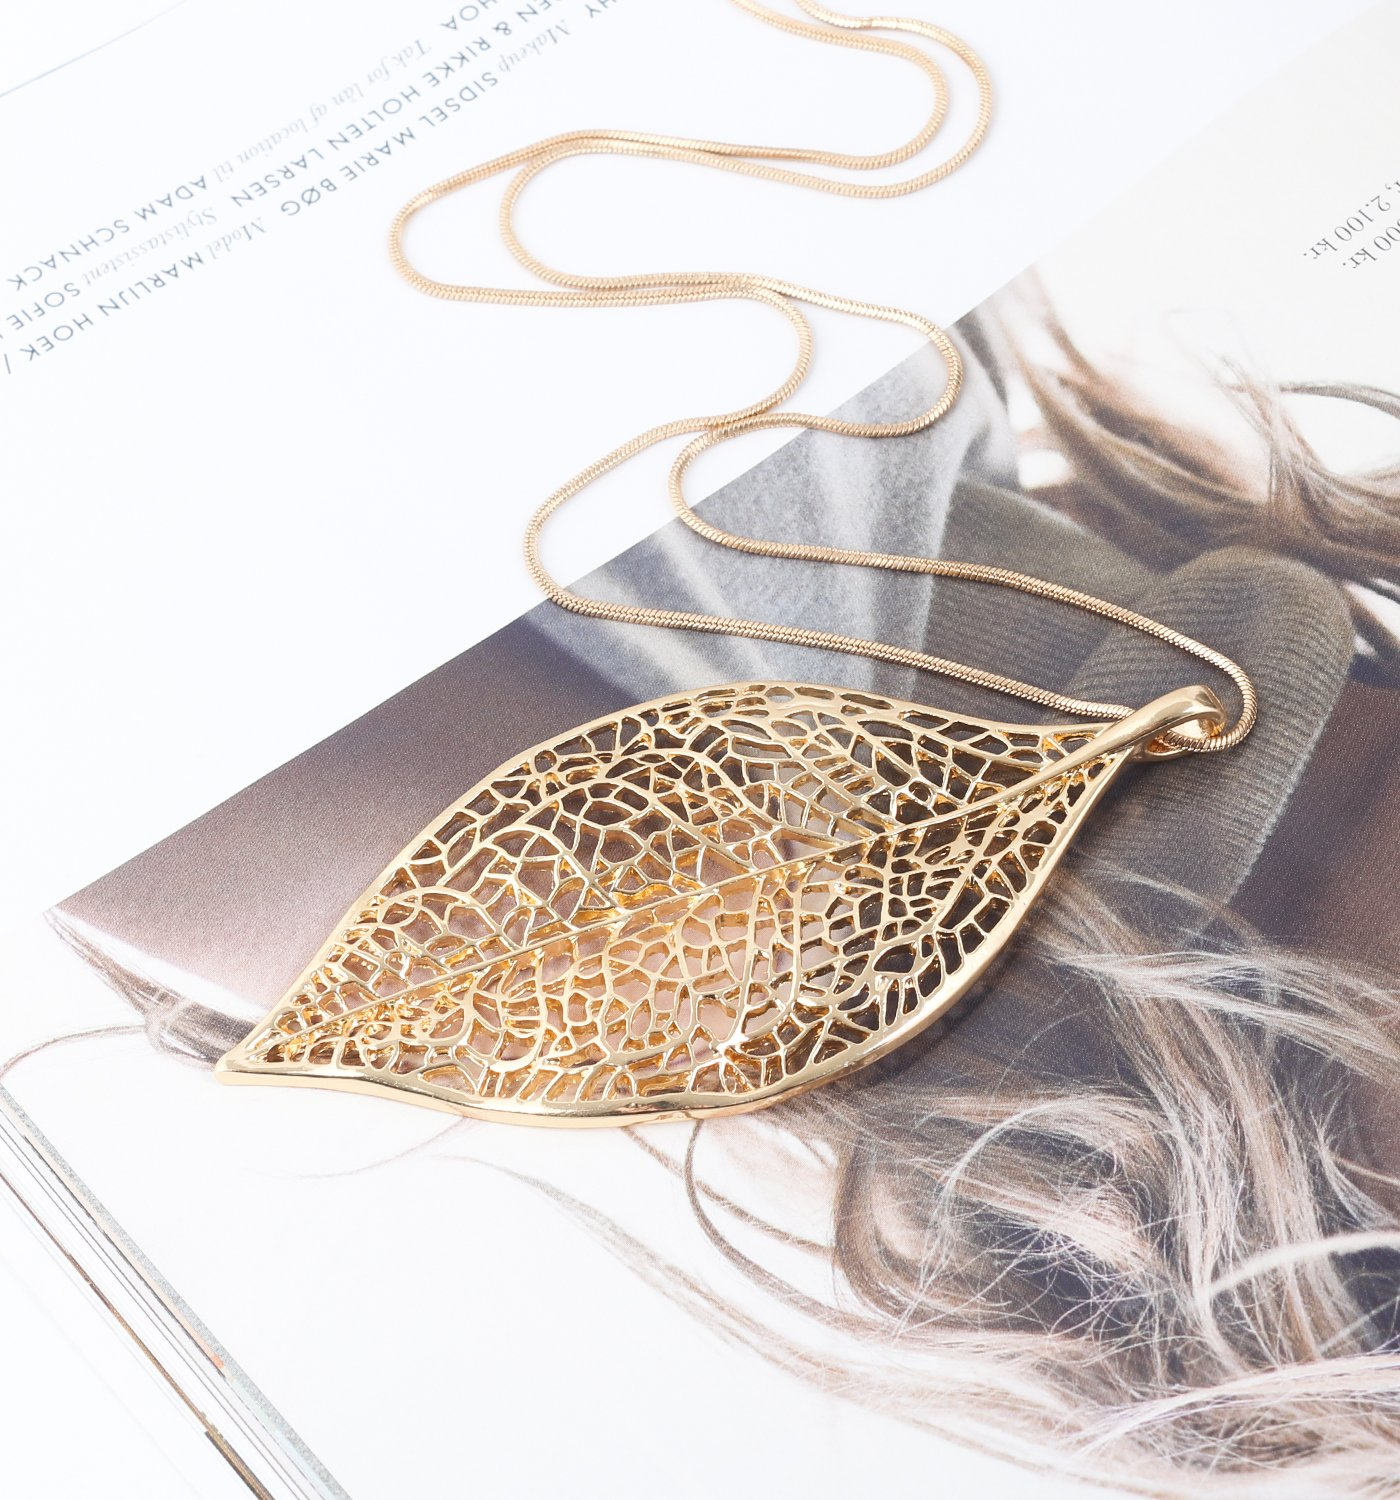 NLCAC Filigree Leaf Pedant Necklace Snake Chain Gorgeous Hollow Leaf Necklace Bohemian Jewelry for Women, Girls (Gold Tone)